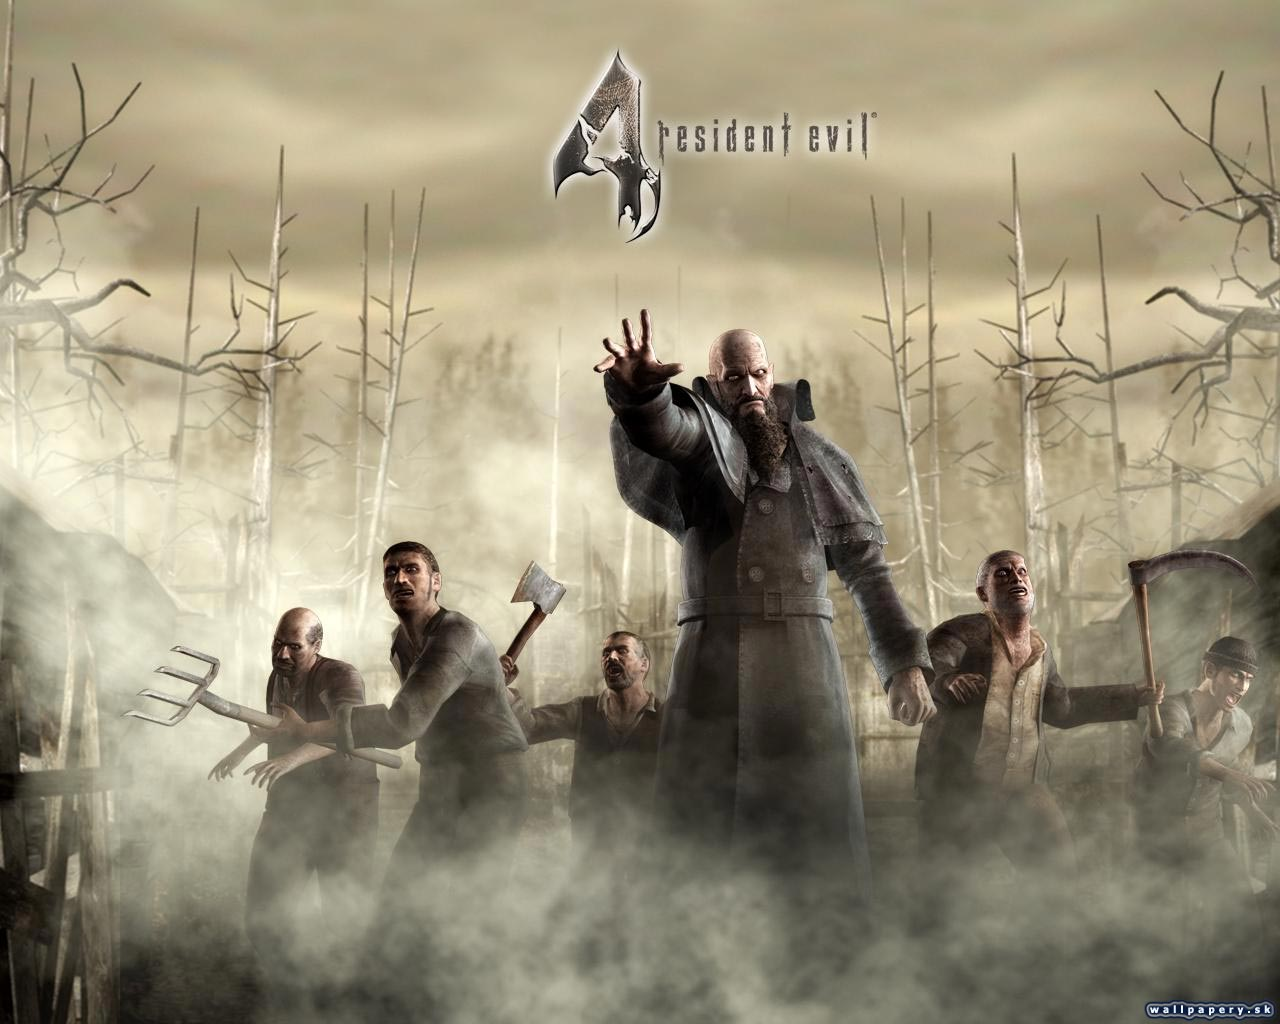 Resident Evil 4 Wallpapers Resident Evil 4 Wallpaper 33549692